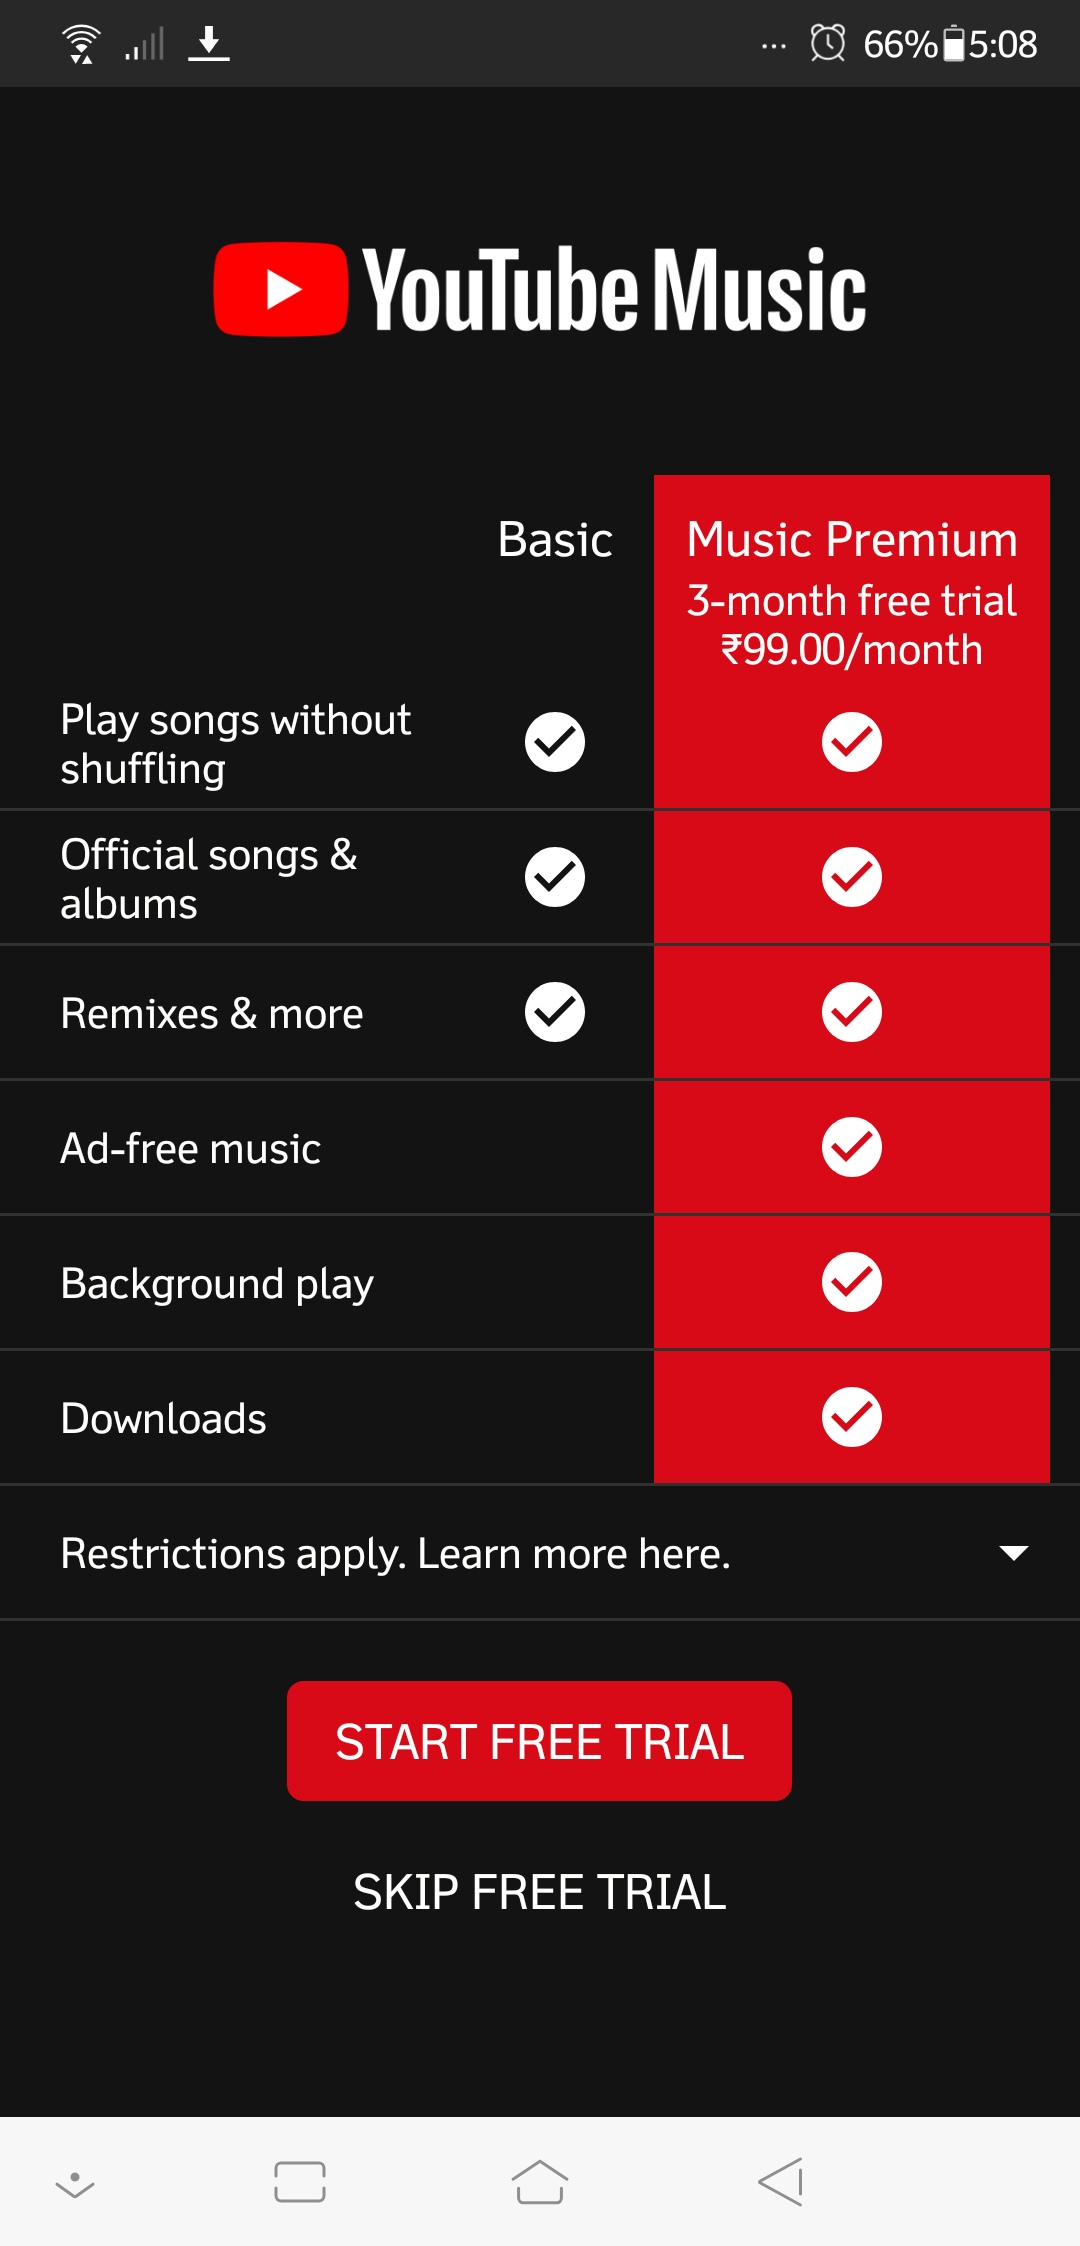 YouTube Music App Released in India: Download Your Favorite Music